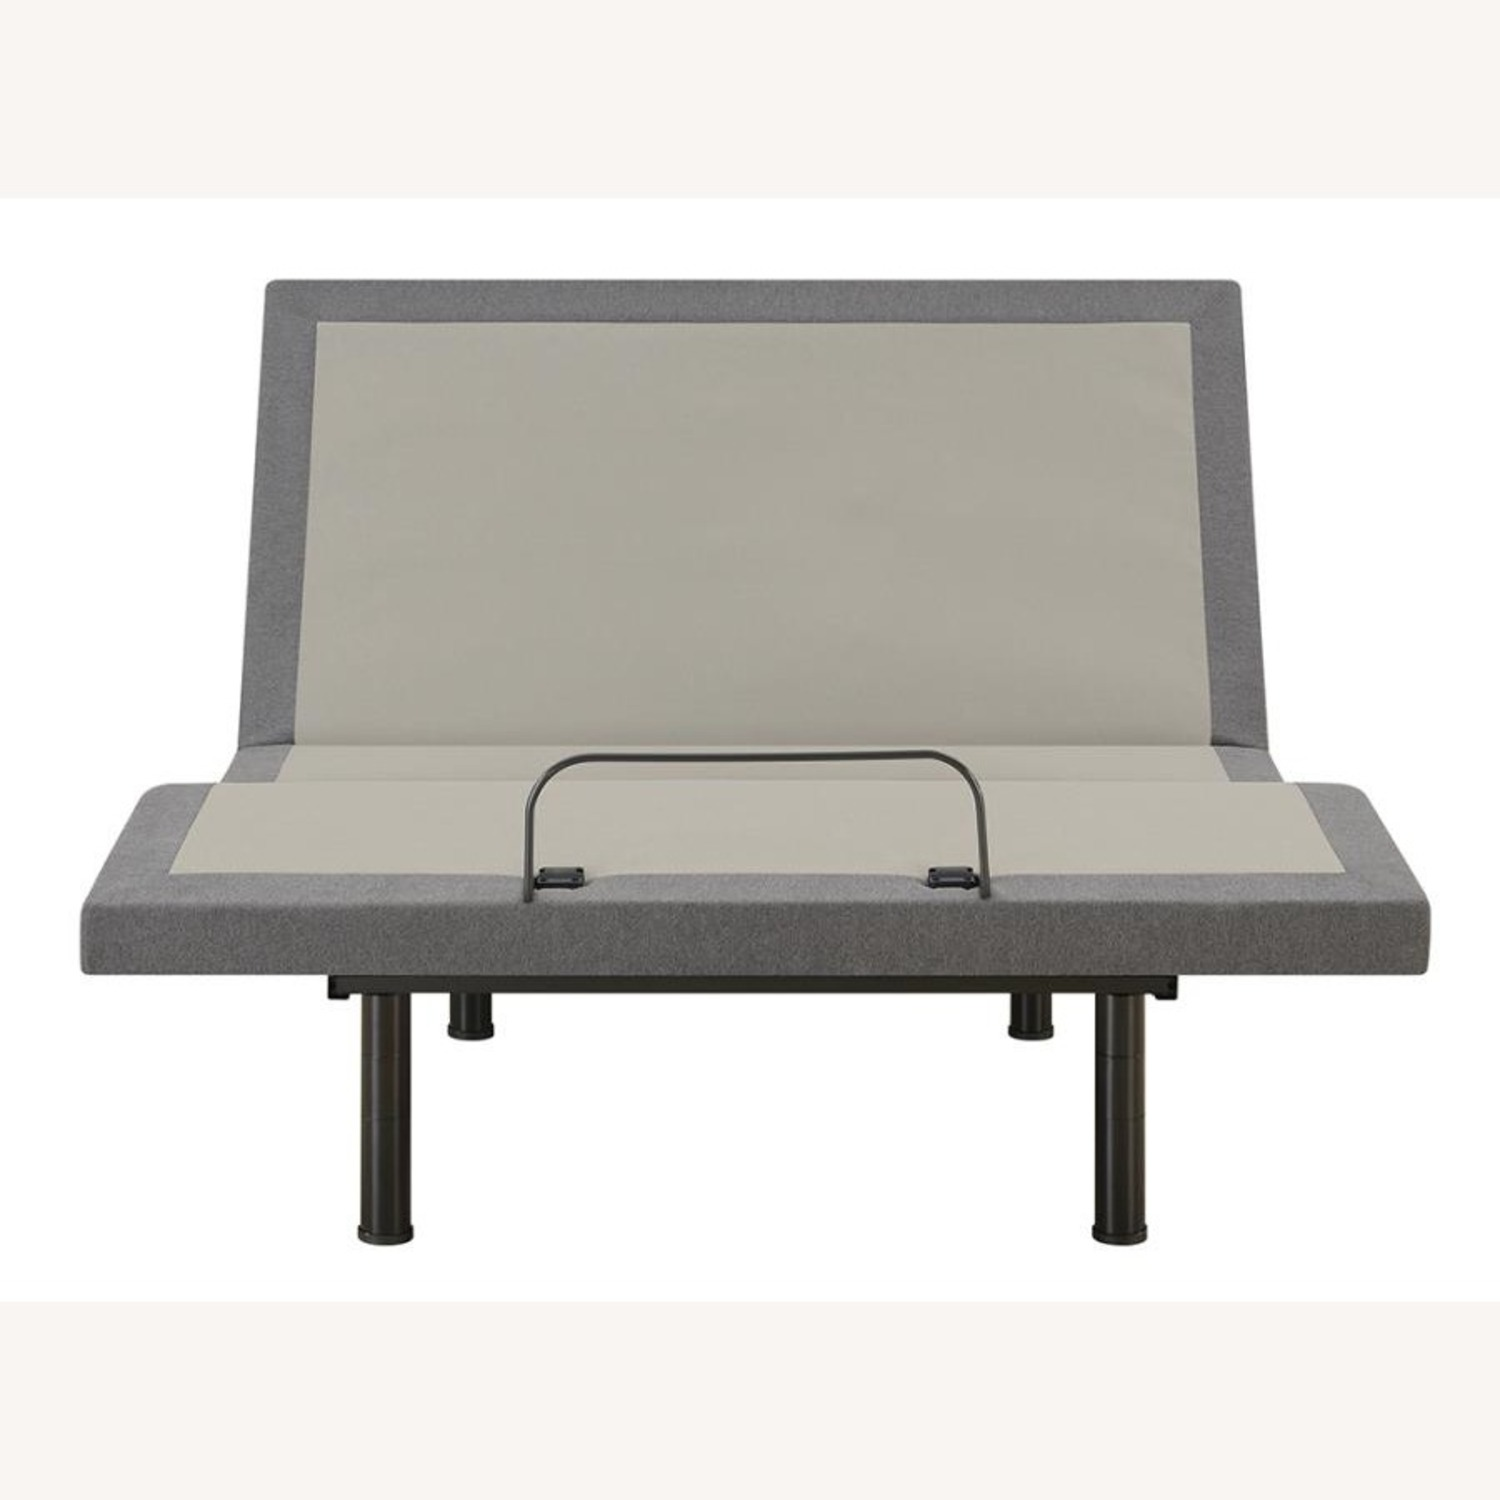 Twin XL Adjustable Bed Base In Grey Fabric Finish - image-2